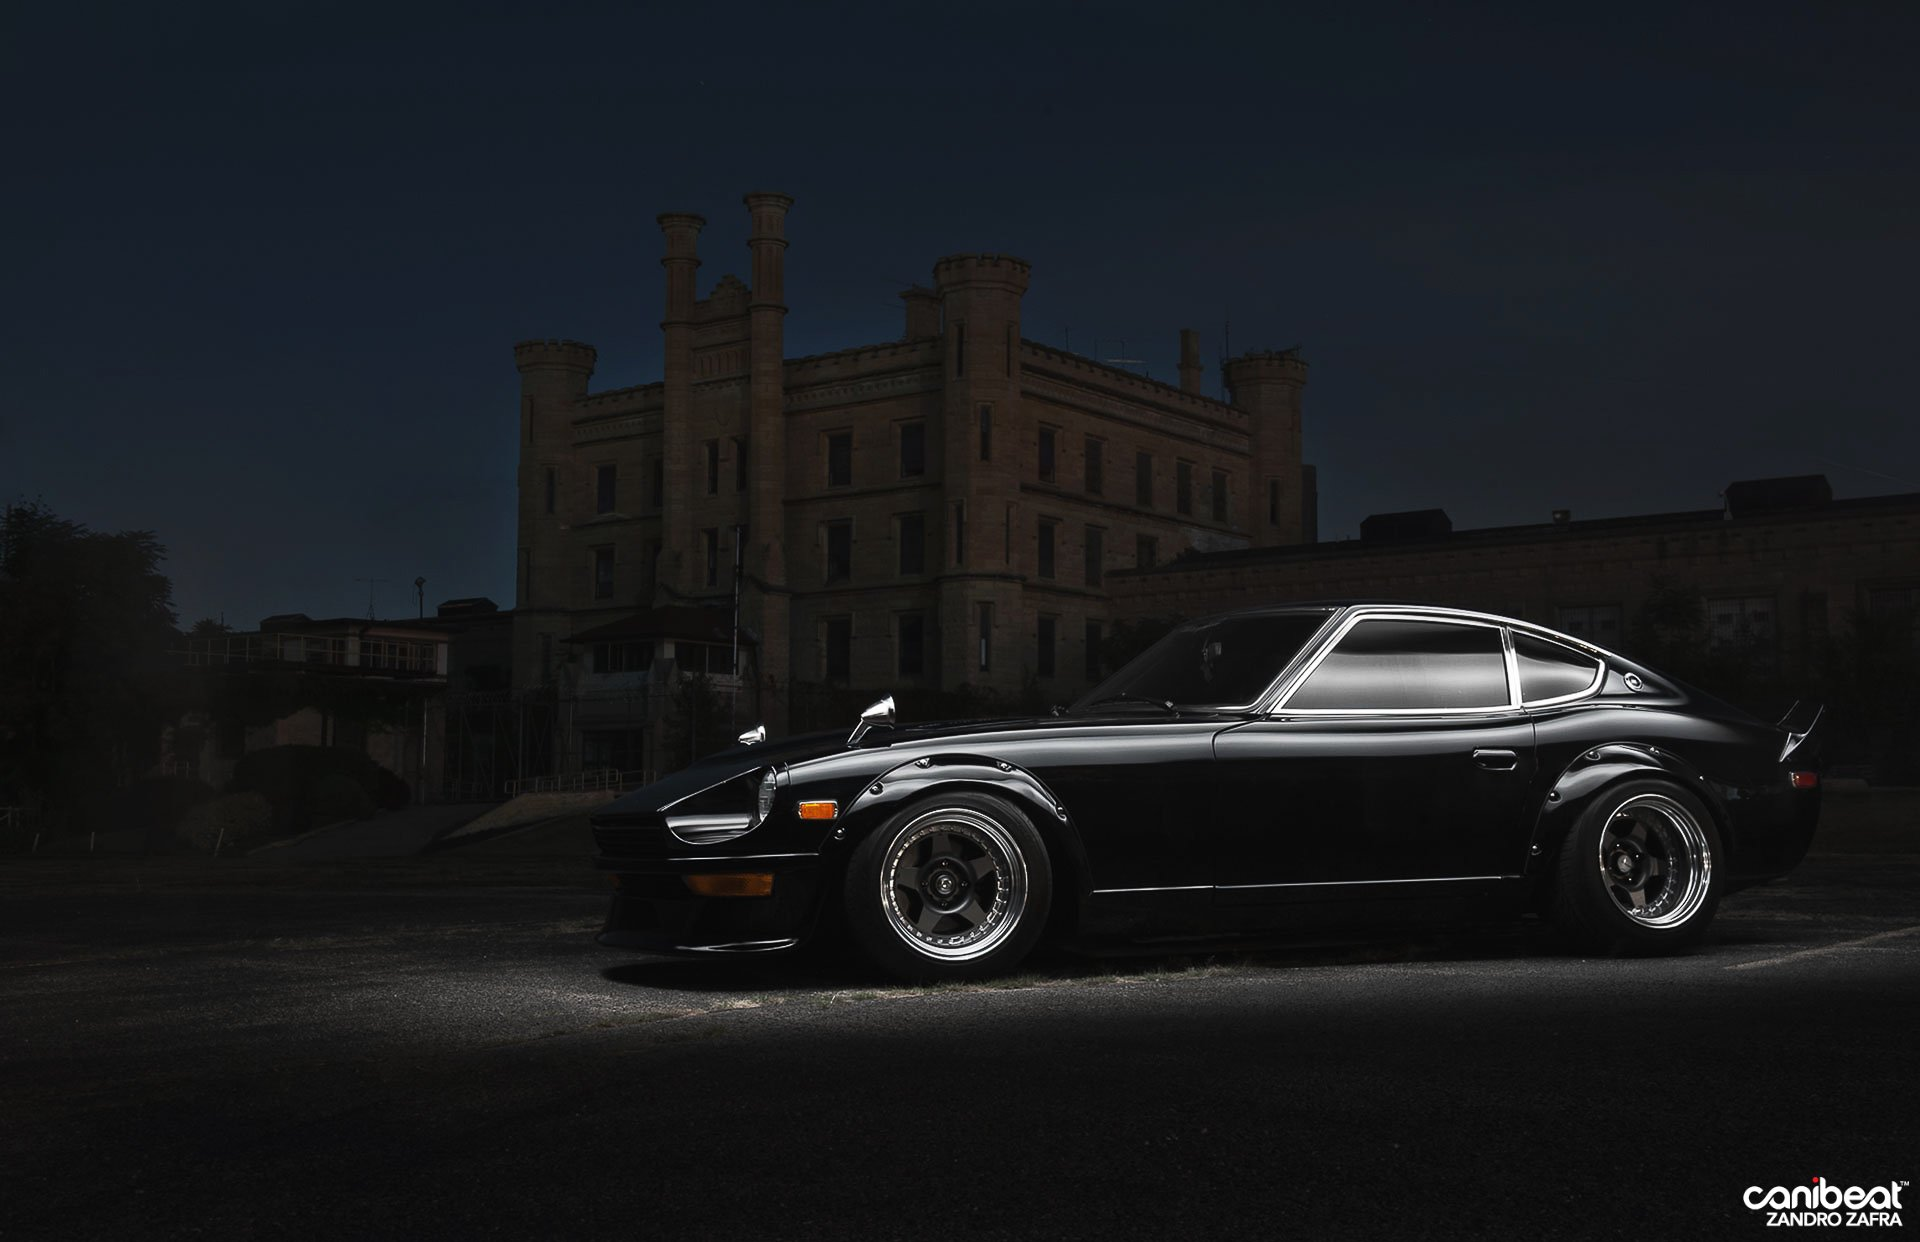 1978 datsun 280z nissan tuning custom wallpaper. Black Bedroom Furniture Sets. Home Design Ideas